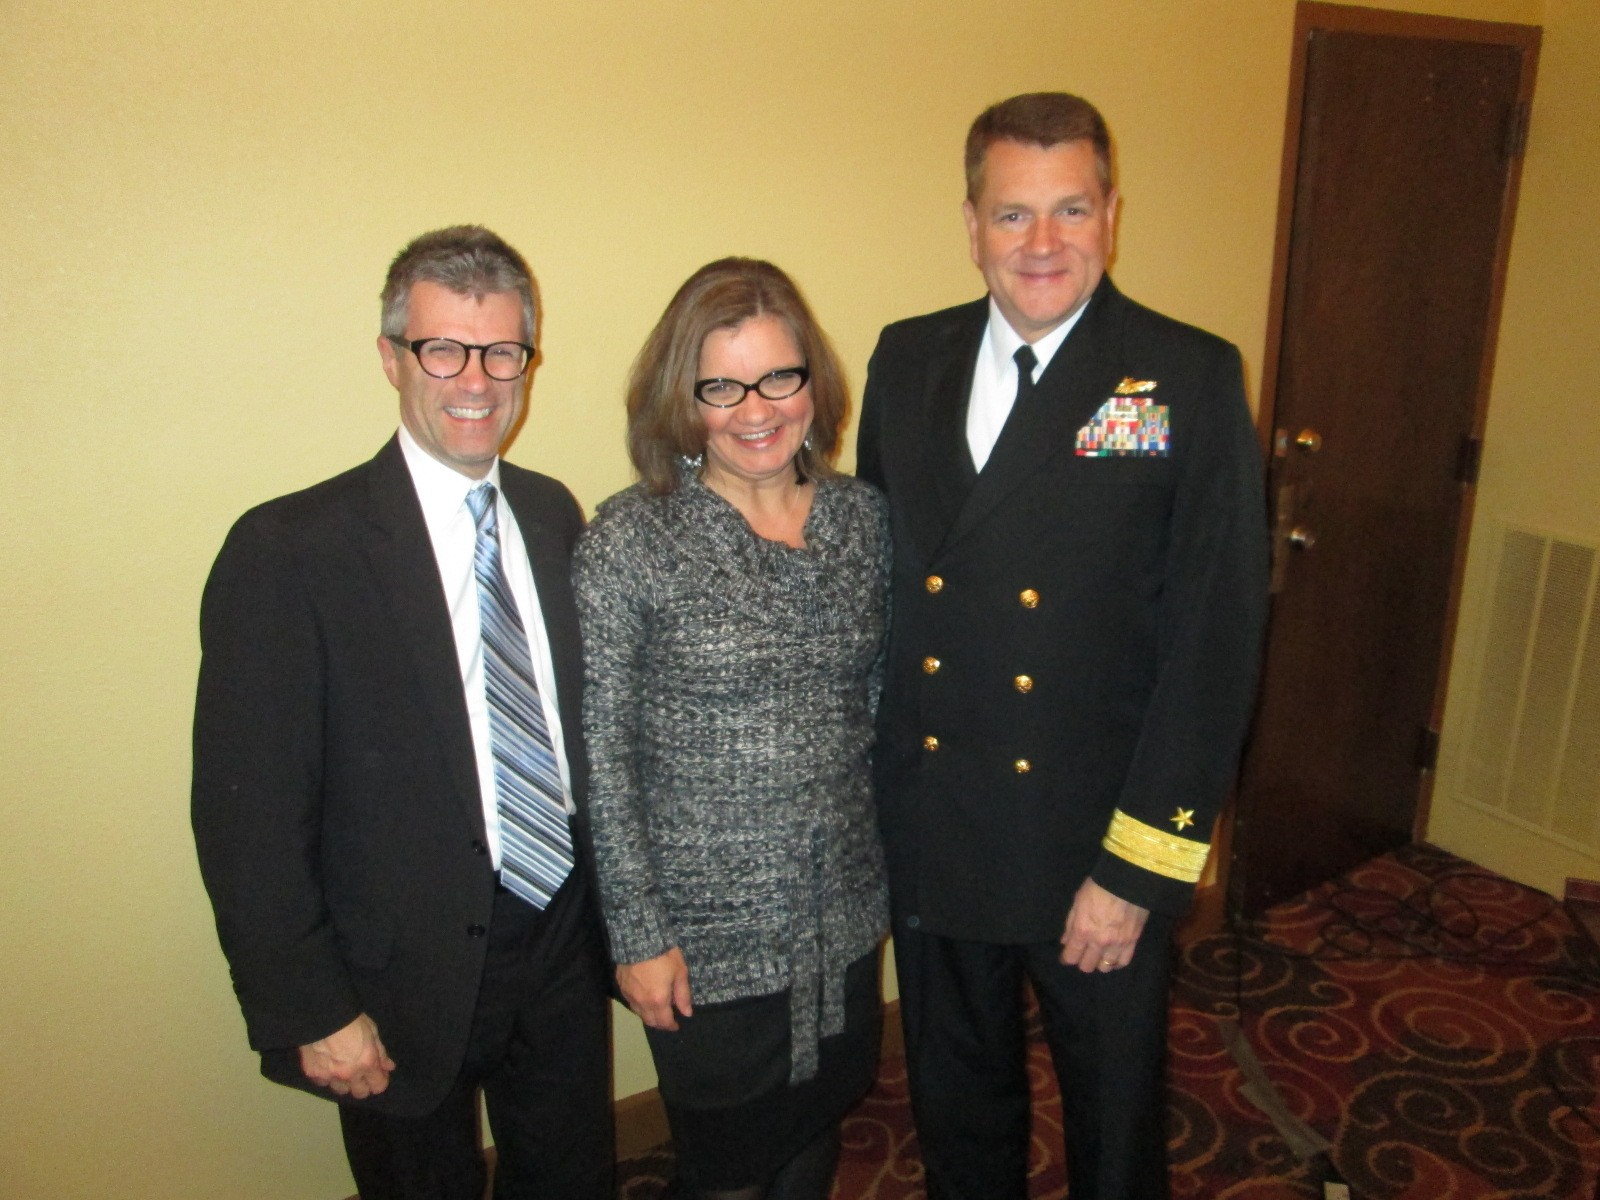 IMG_4886_Kevin_and_Carlene_West_and_RADM_Davis.jpg